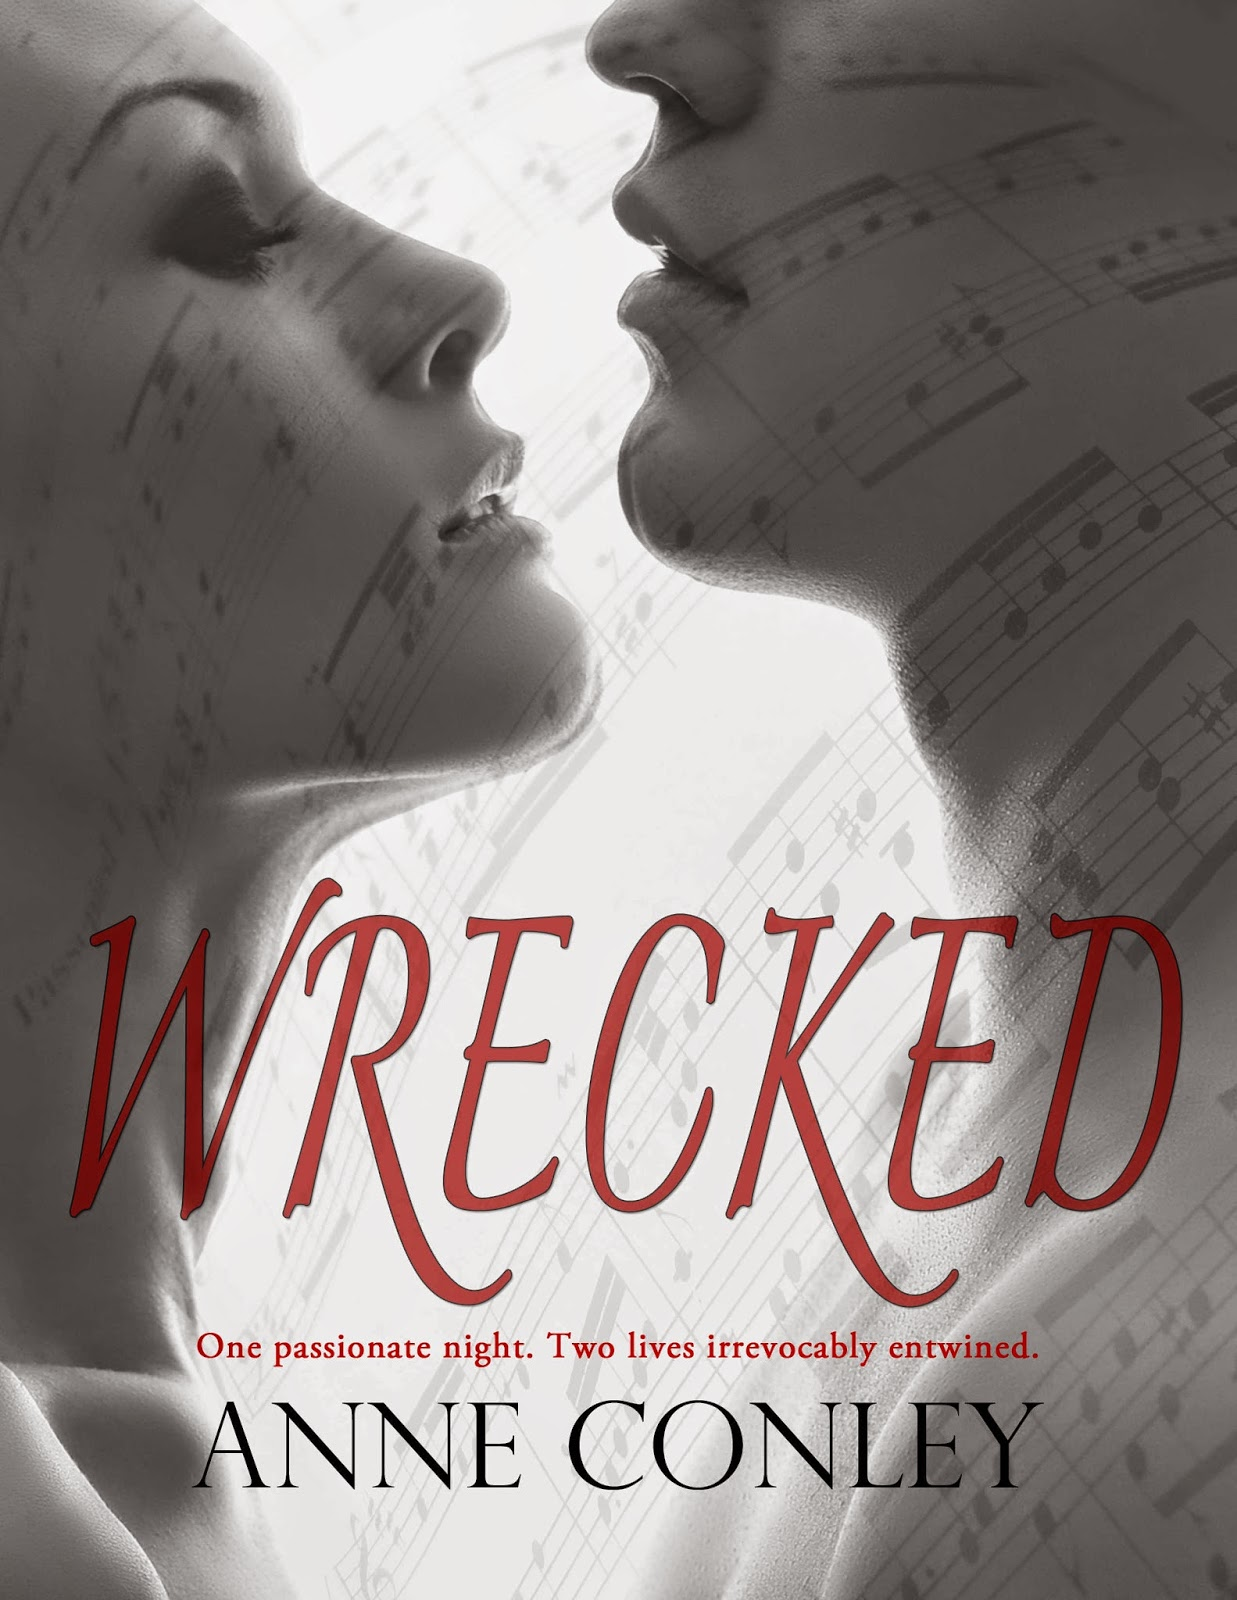 https://www.amazon.com/Wrecked-Stories-Serendipity-8-ebook/dp/B00KY656MC/ref=as_sl_pc_tf_til?tag=theconcor-20&linkCode=w00&linkId=IG6SELKCS7MVOGUZ&creativeASIN=B00KY656MC